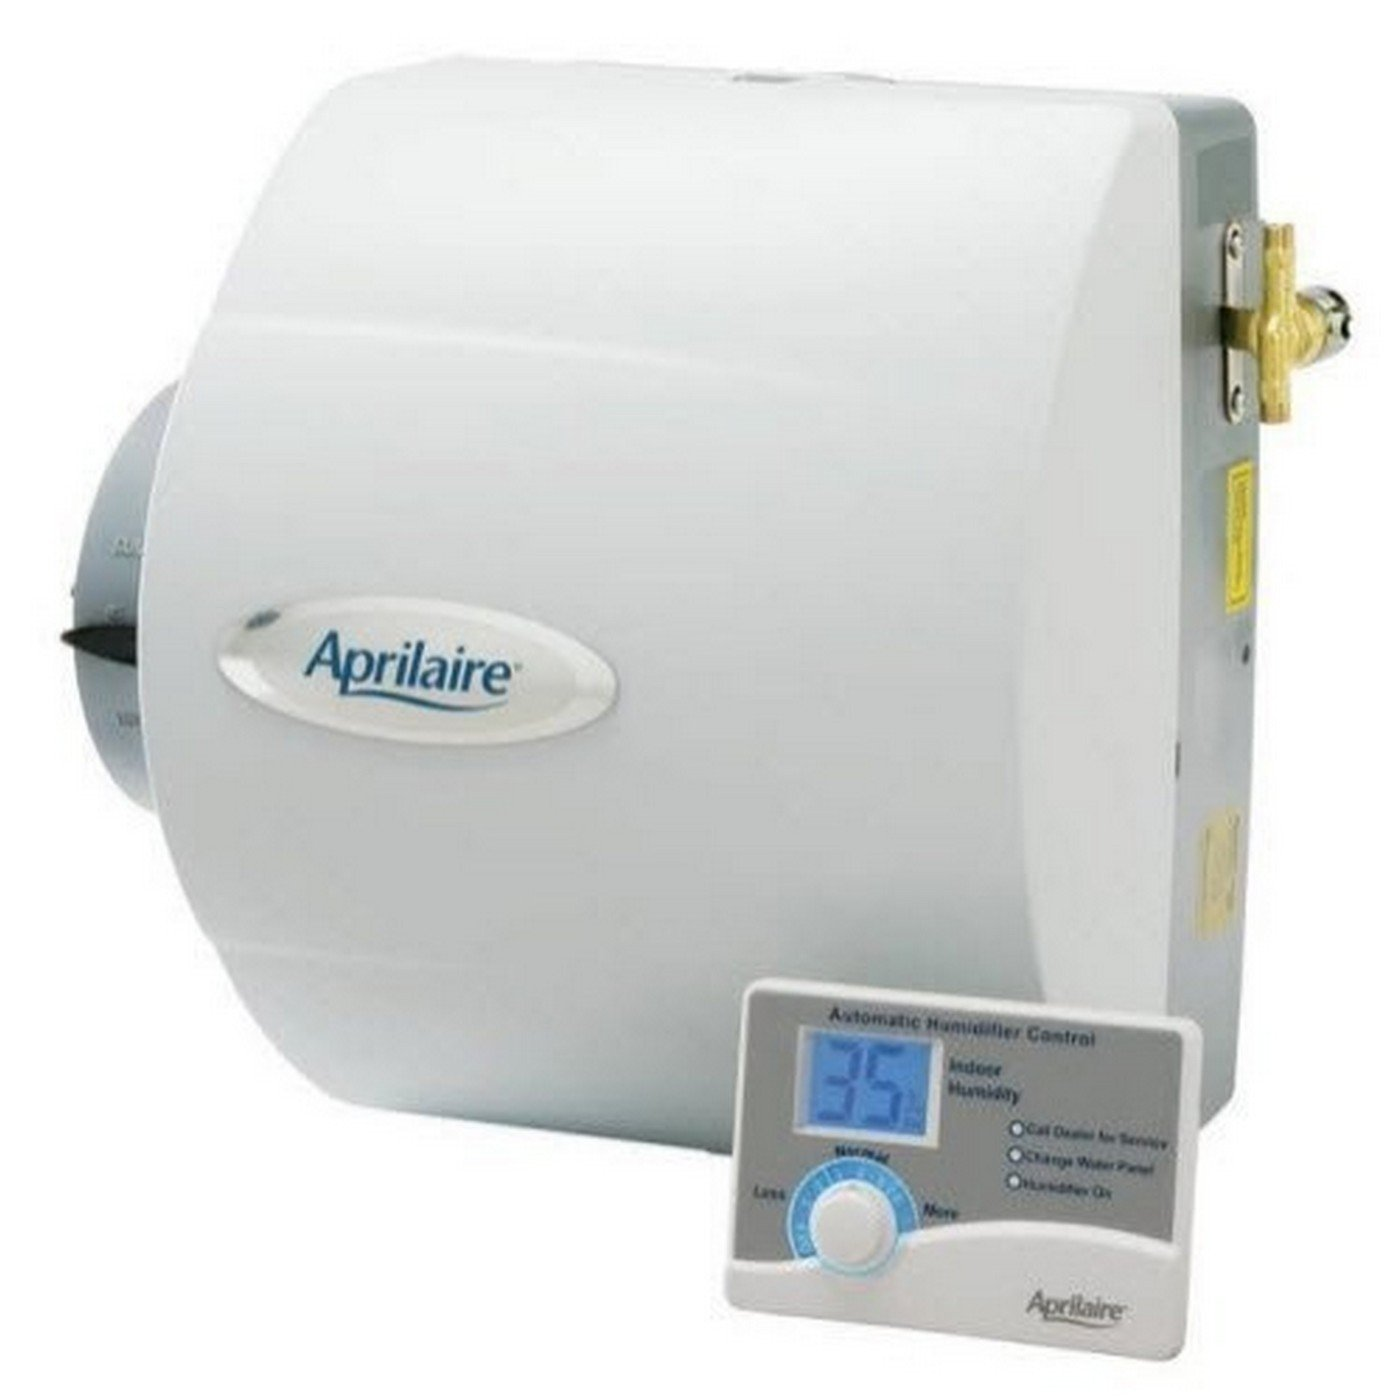 aprilaire 400 reviews Aprilaire 400 Humidifier Whole House w Auto  #396492